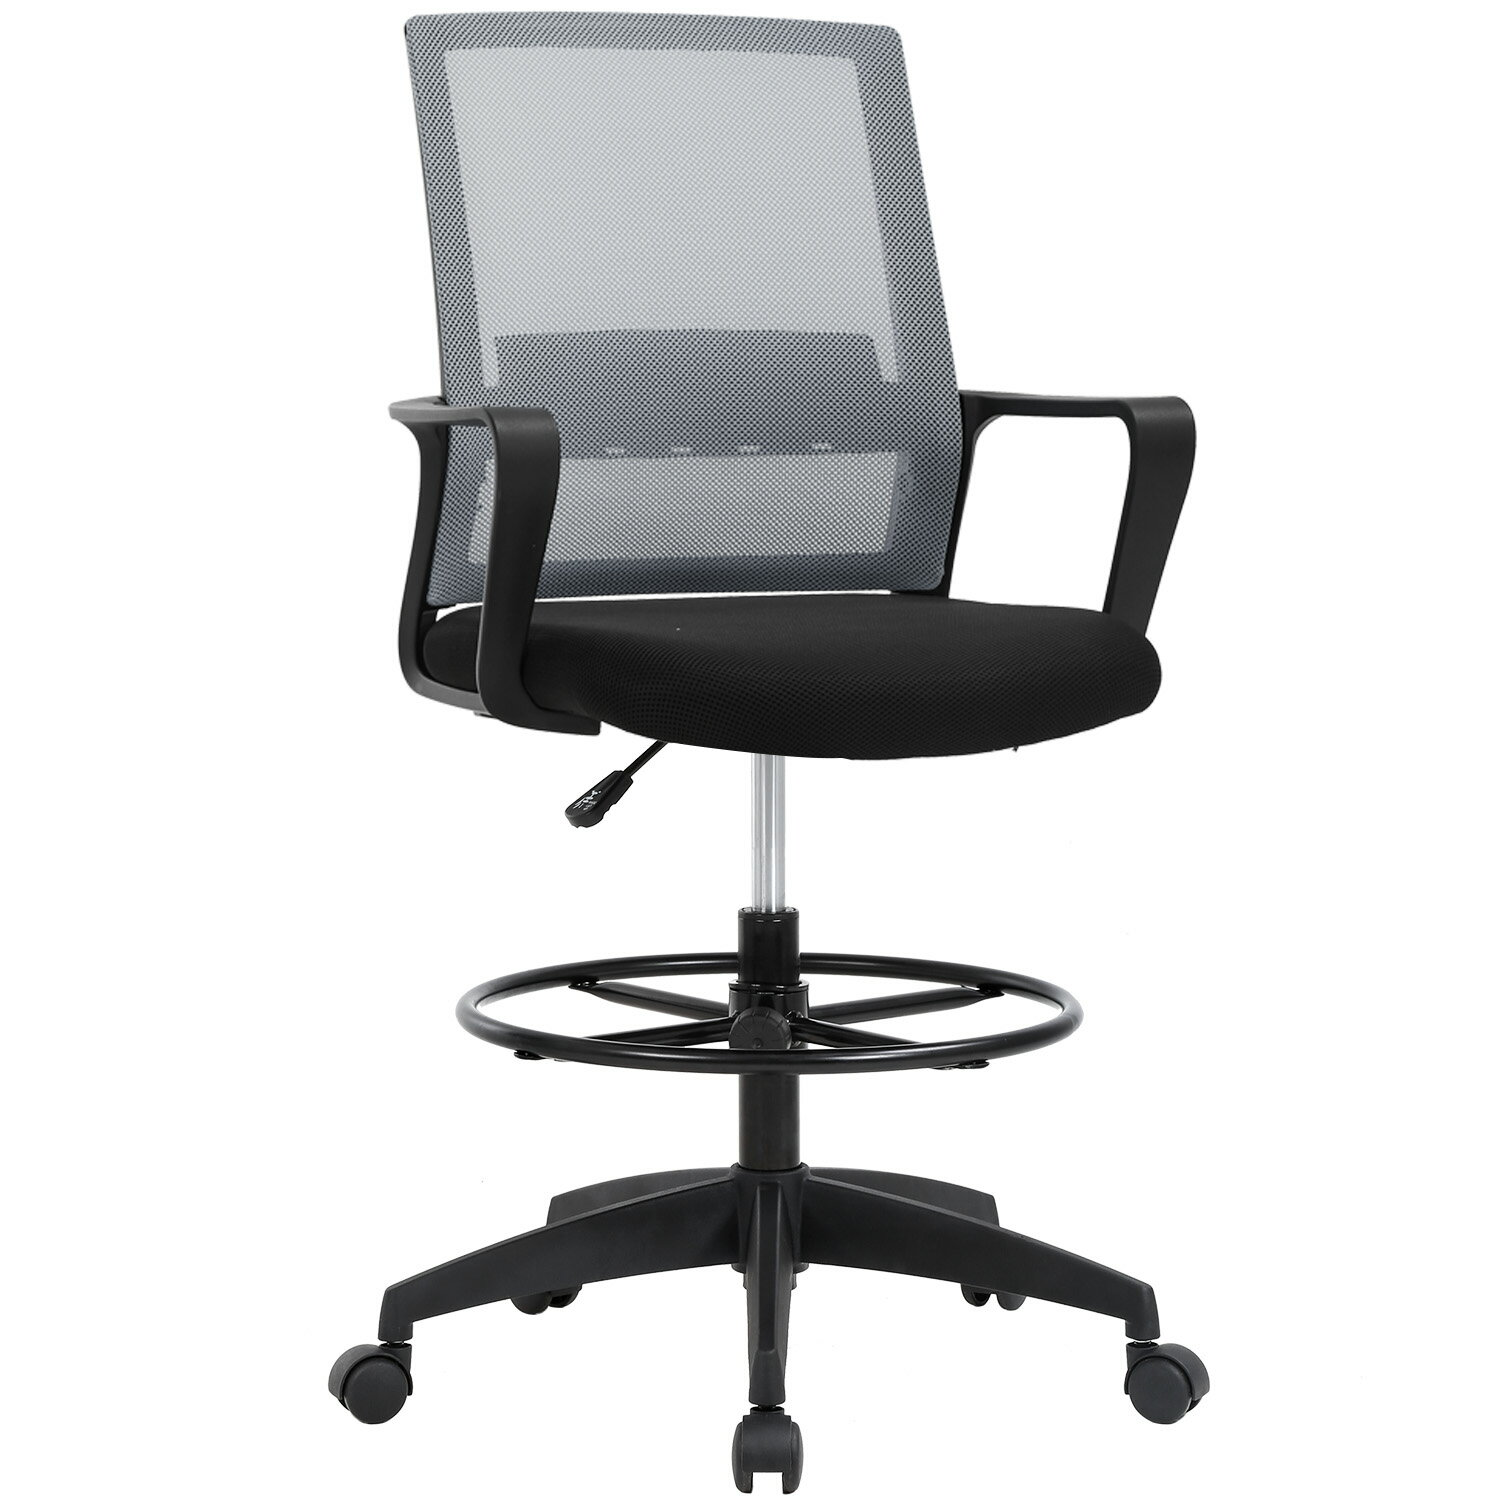 Office Chair Desk Chair Computer Chair Adjustable Height with Lumbar  Support Arms Footrest Mid Back Swivel Rolling Mesh Drafting Chair for  Adults